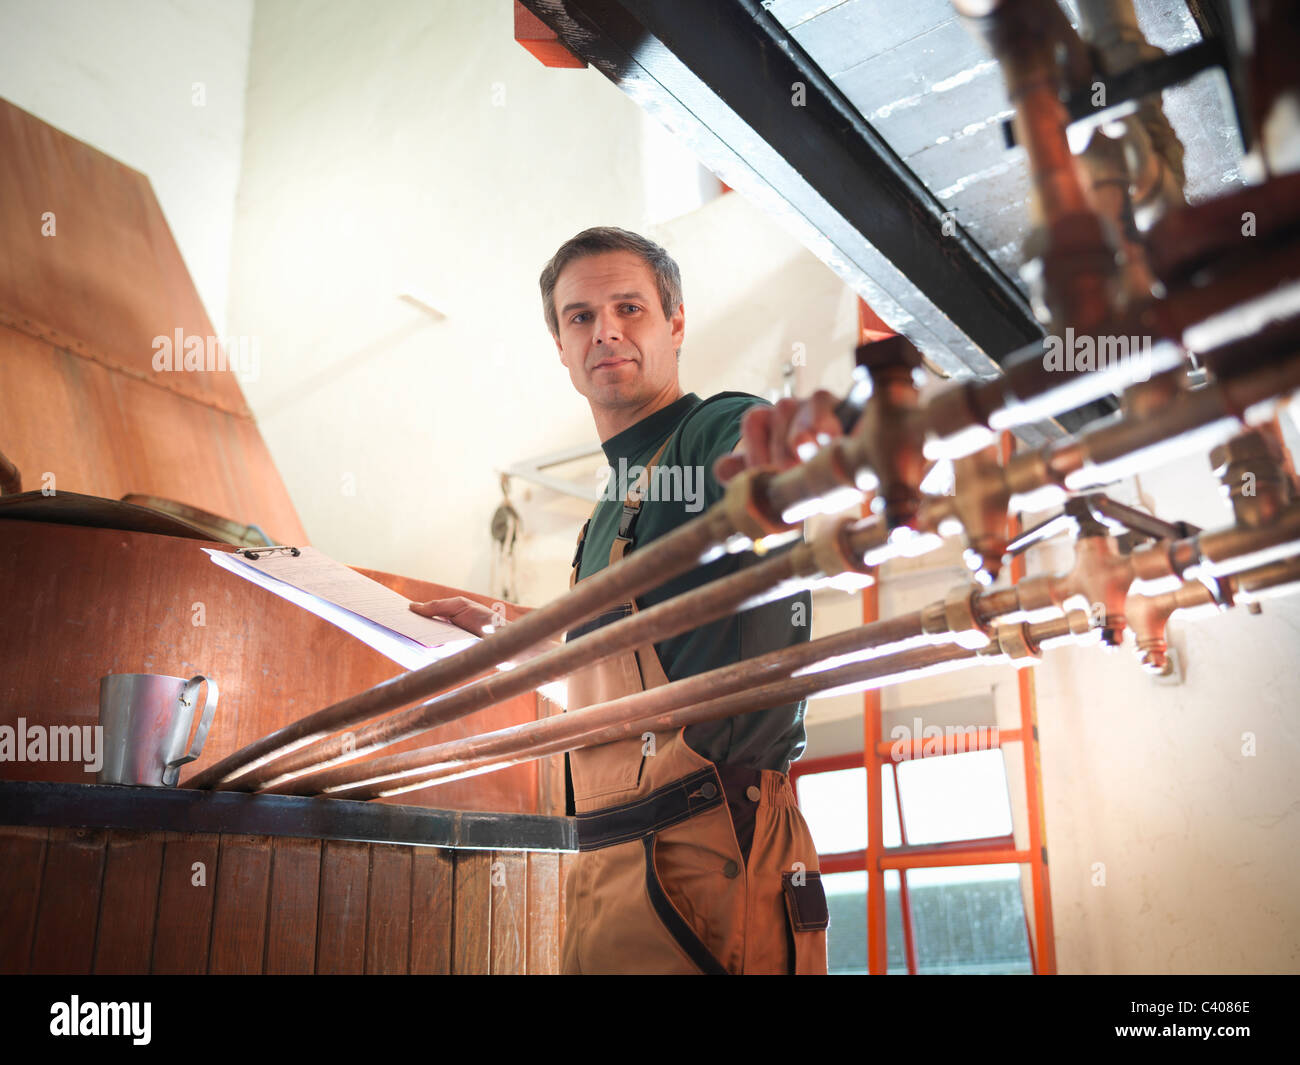 Worker turning taps at copper in brewery - Stock Image